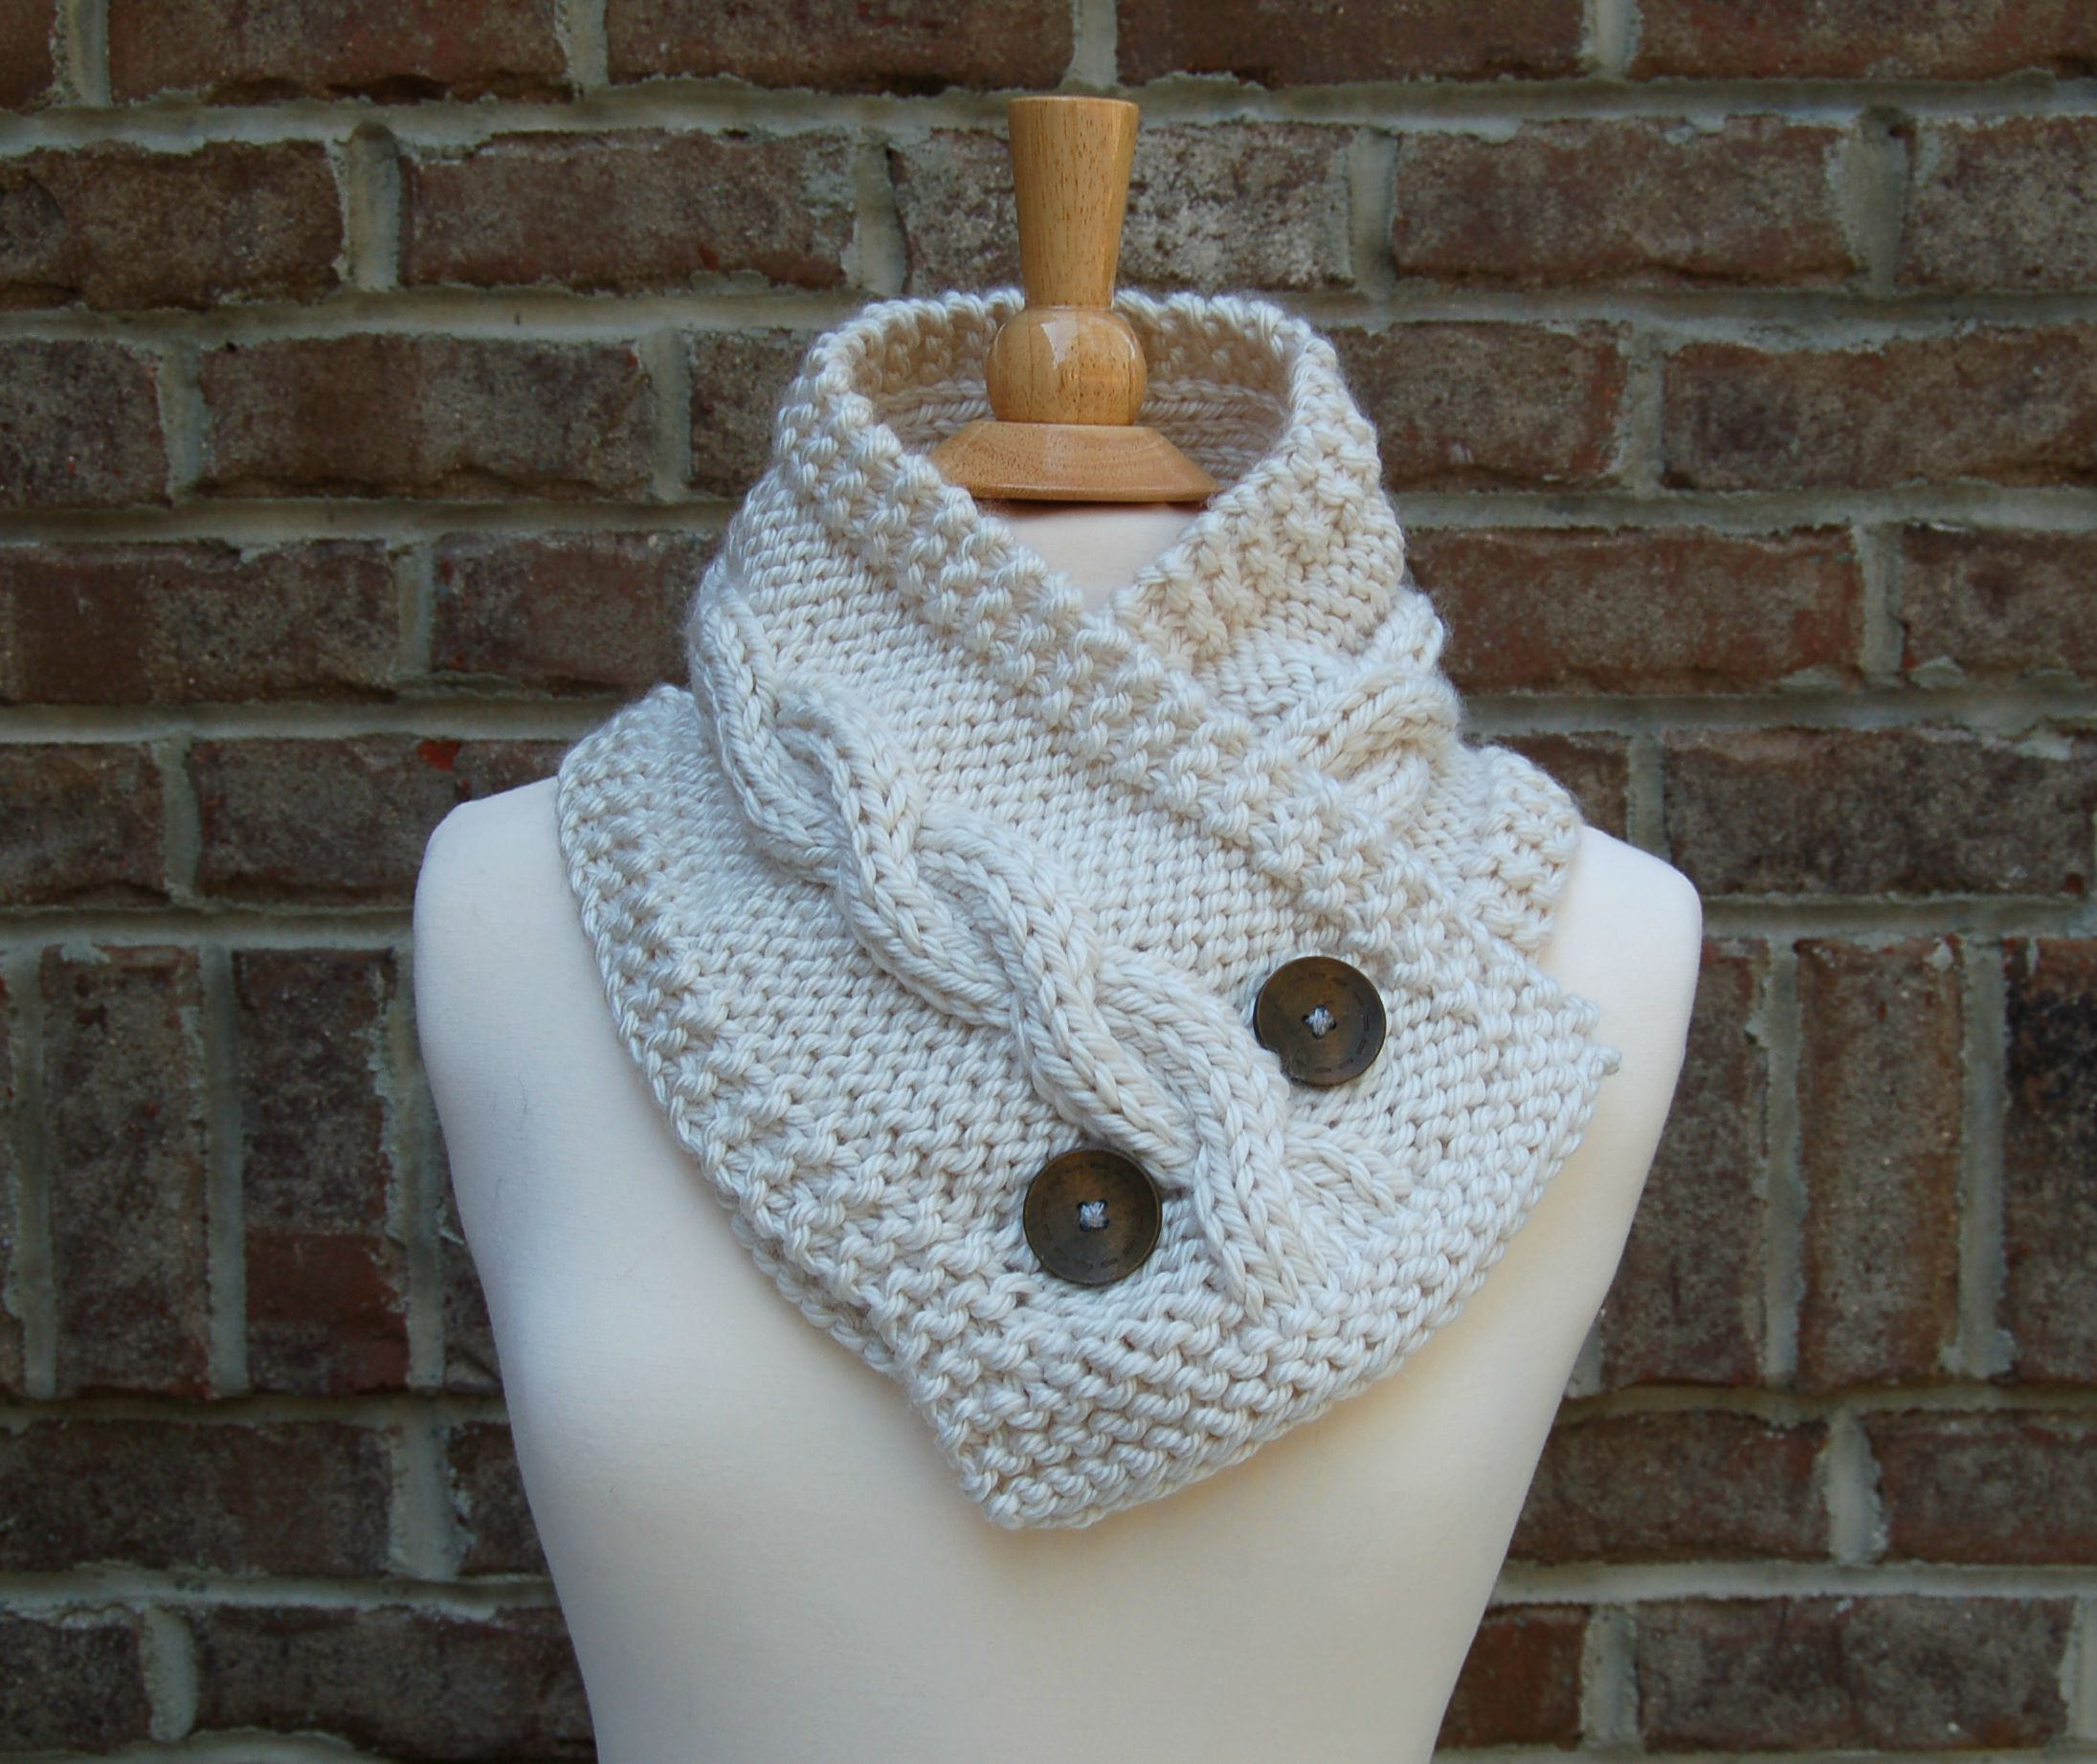 Handmade Knit Cable Cowl Knit Cable Scarf Pixanoodle Online